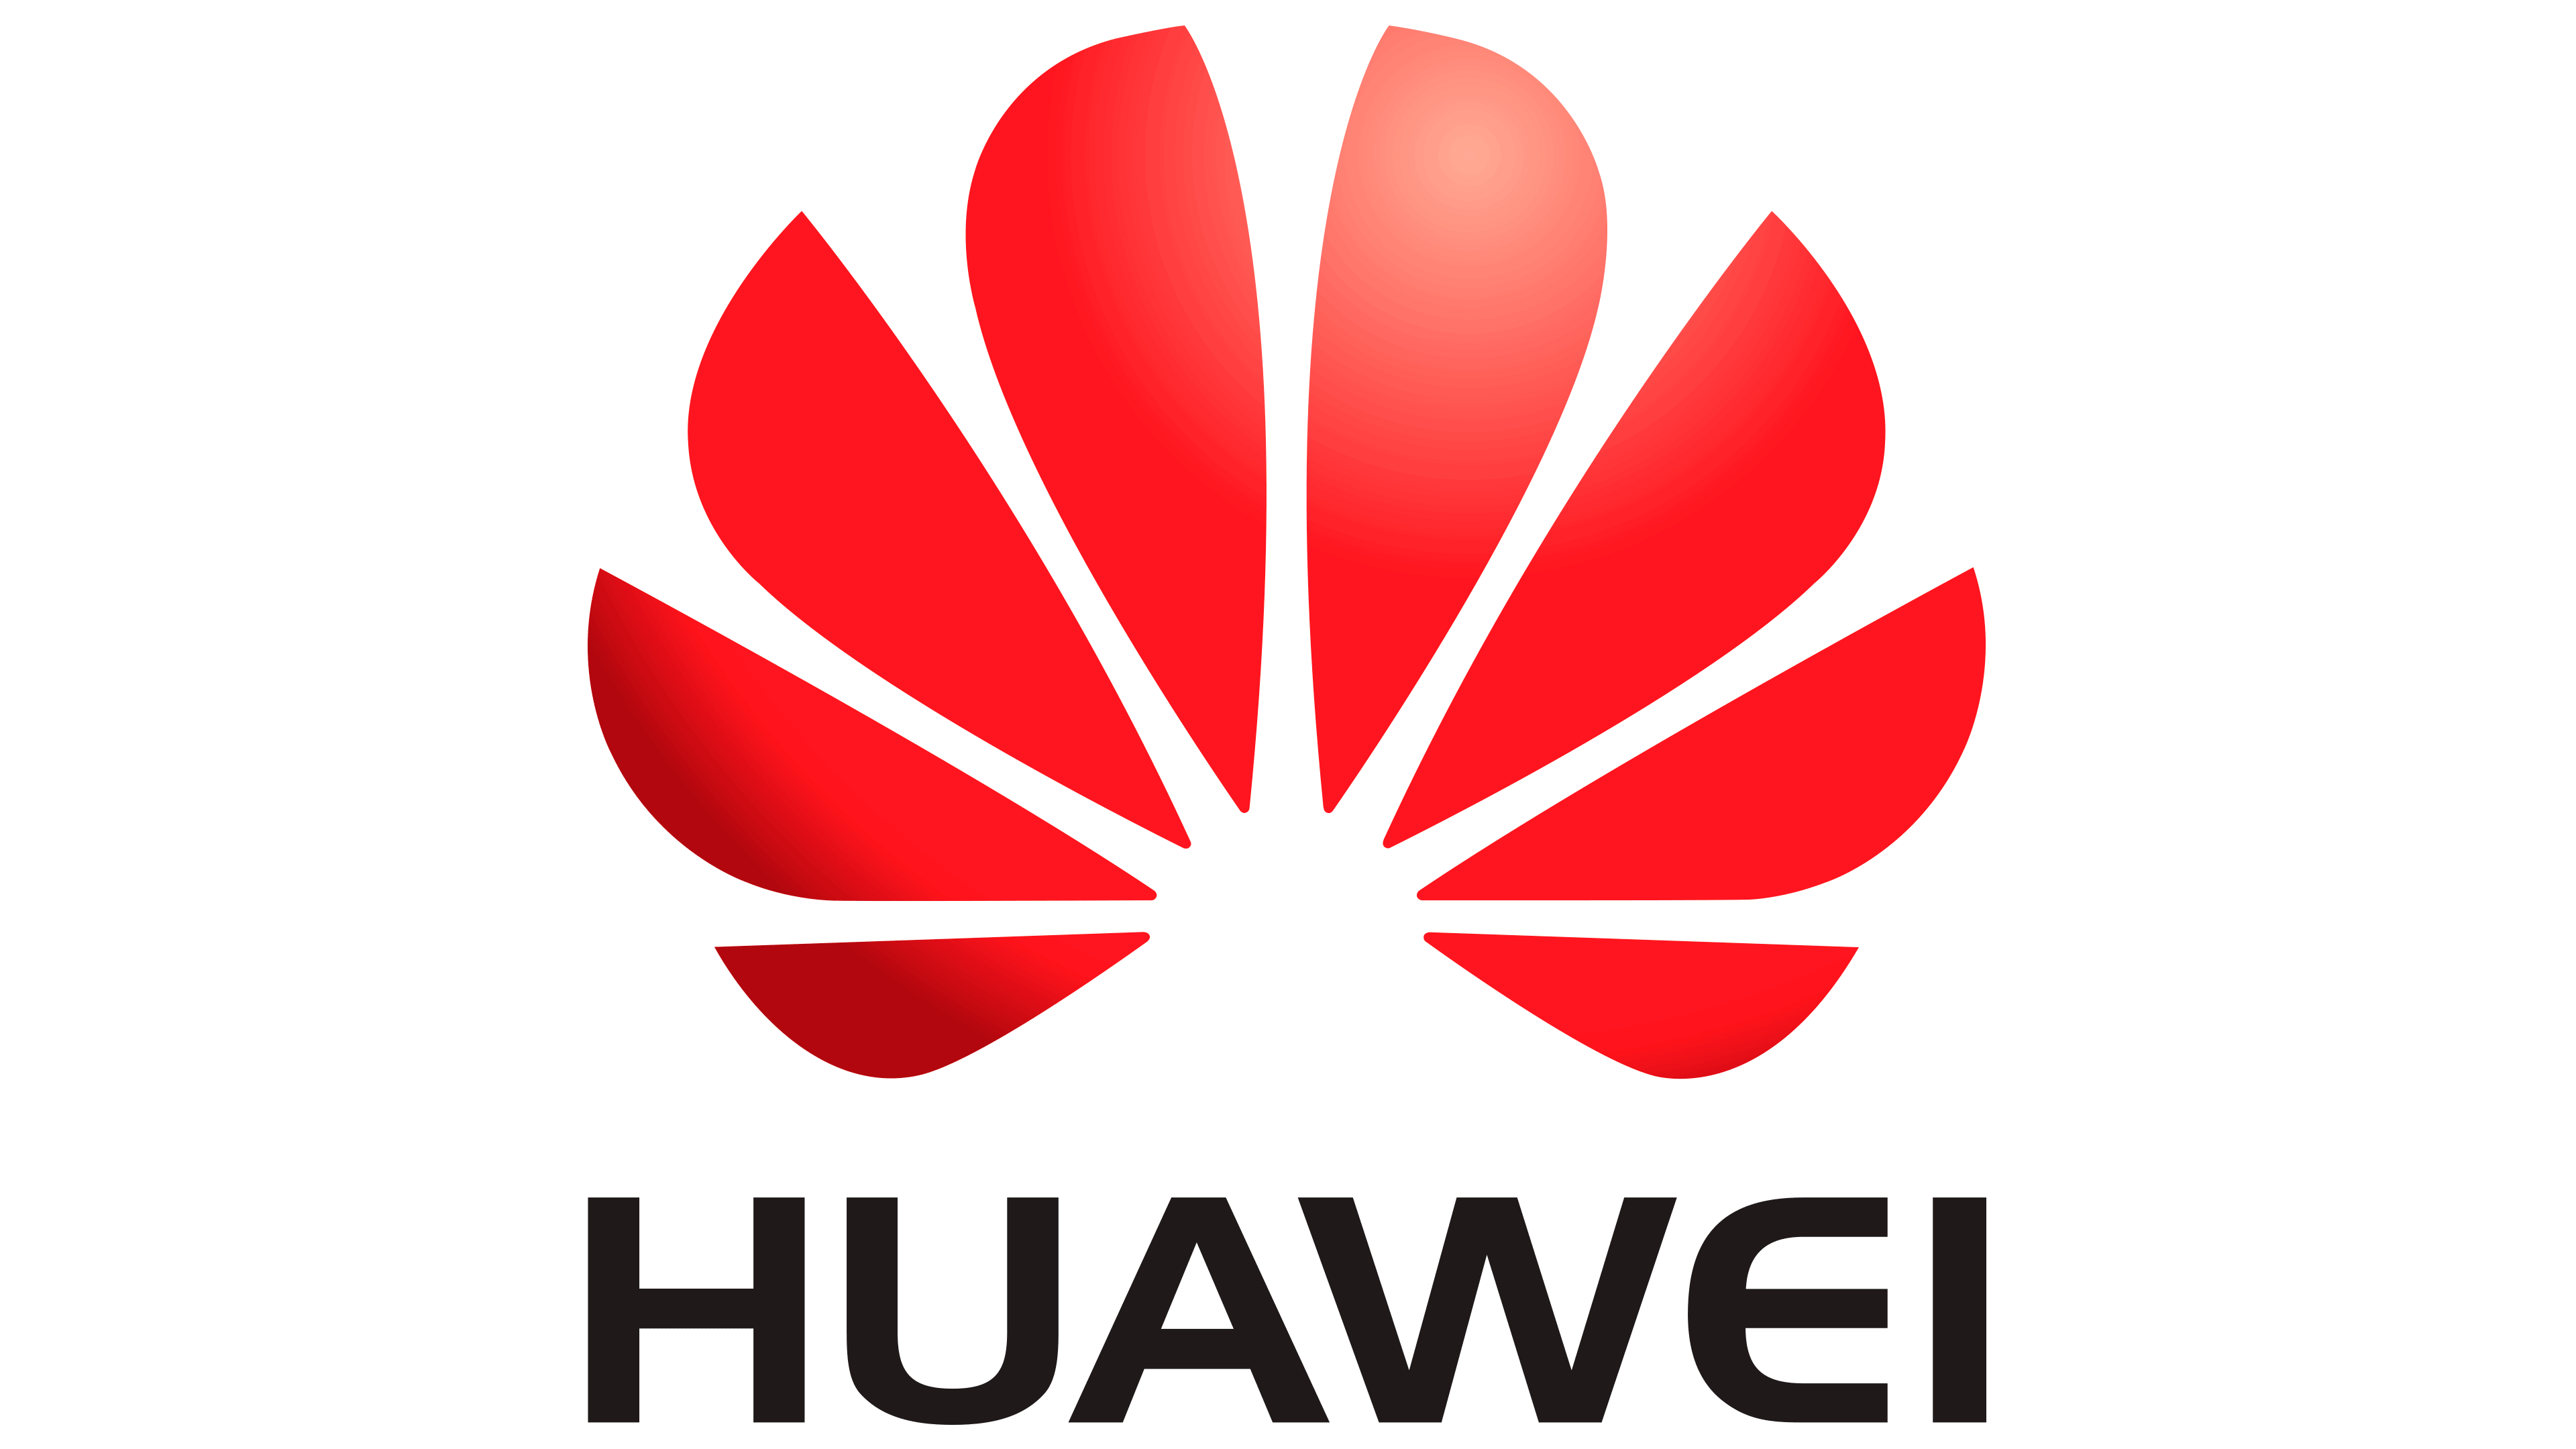 Huawei releases 7th Annual Global Connectivity Index Report and proposes 5 Key Stages of Industry Digital Transformation